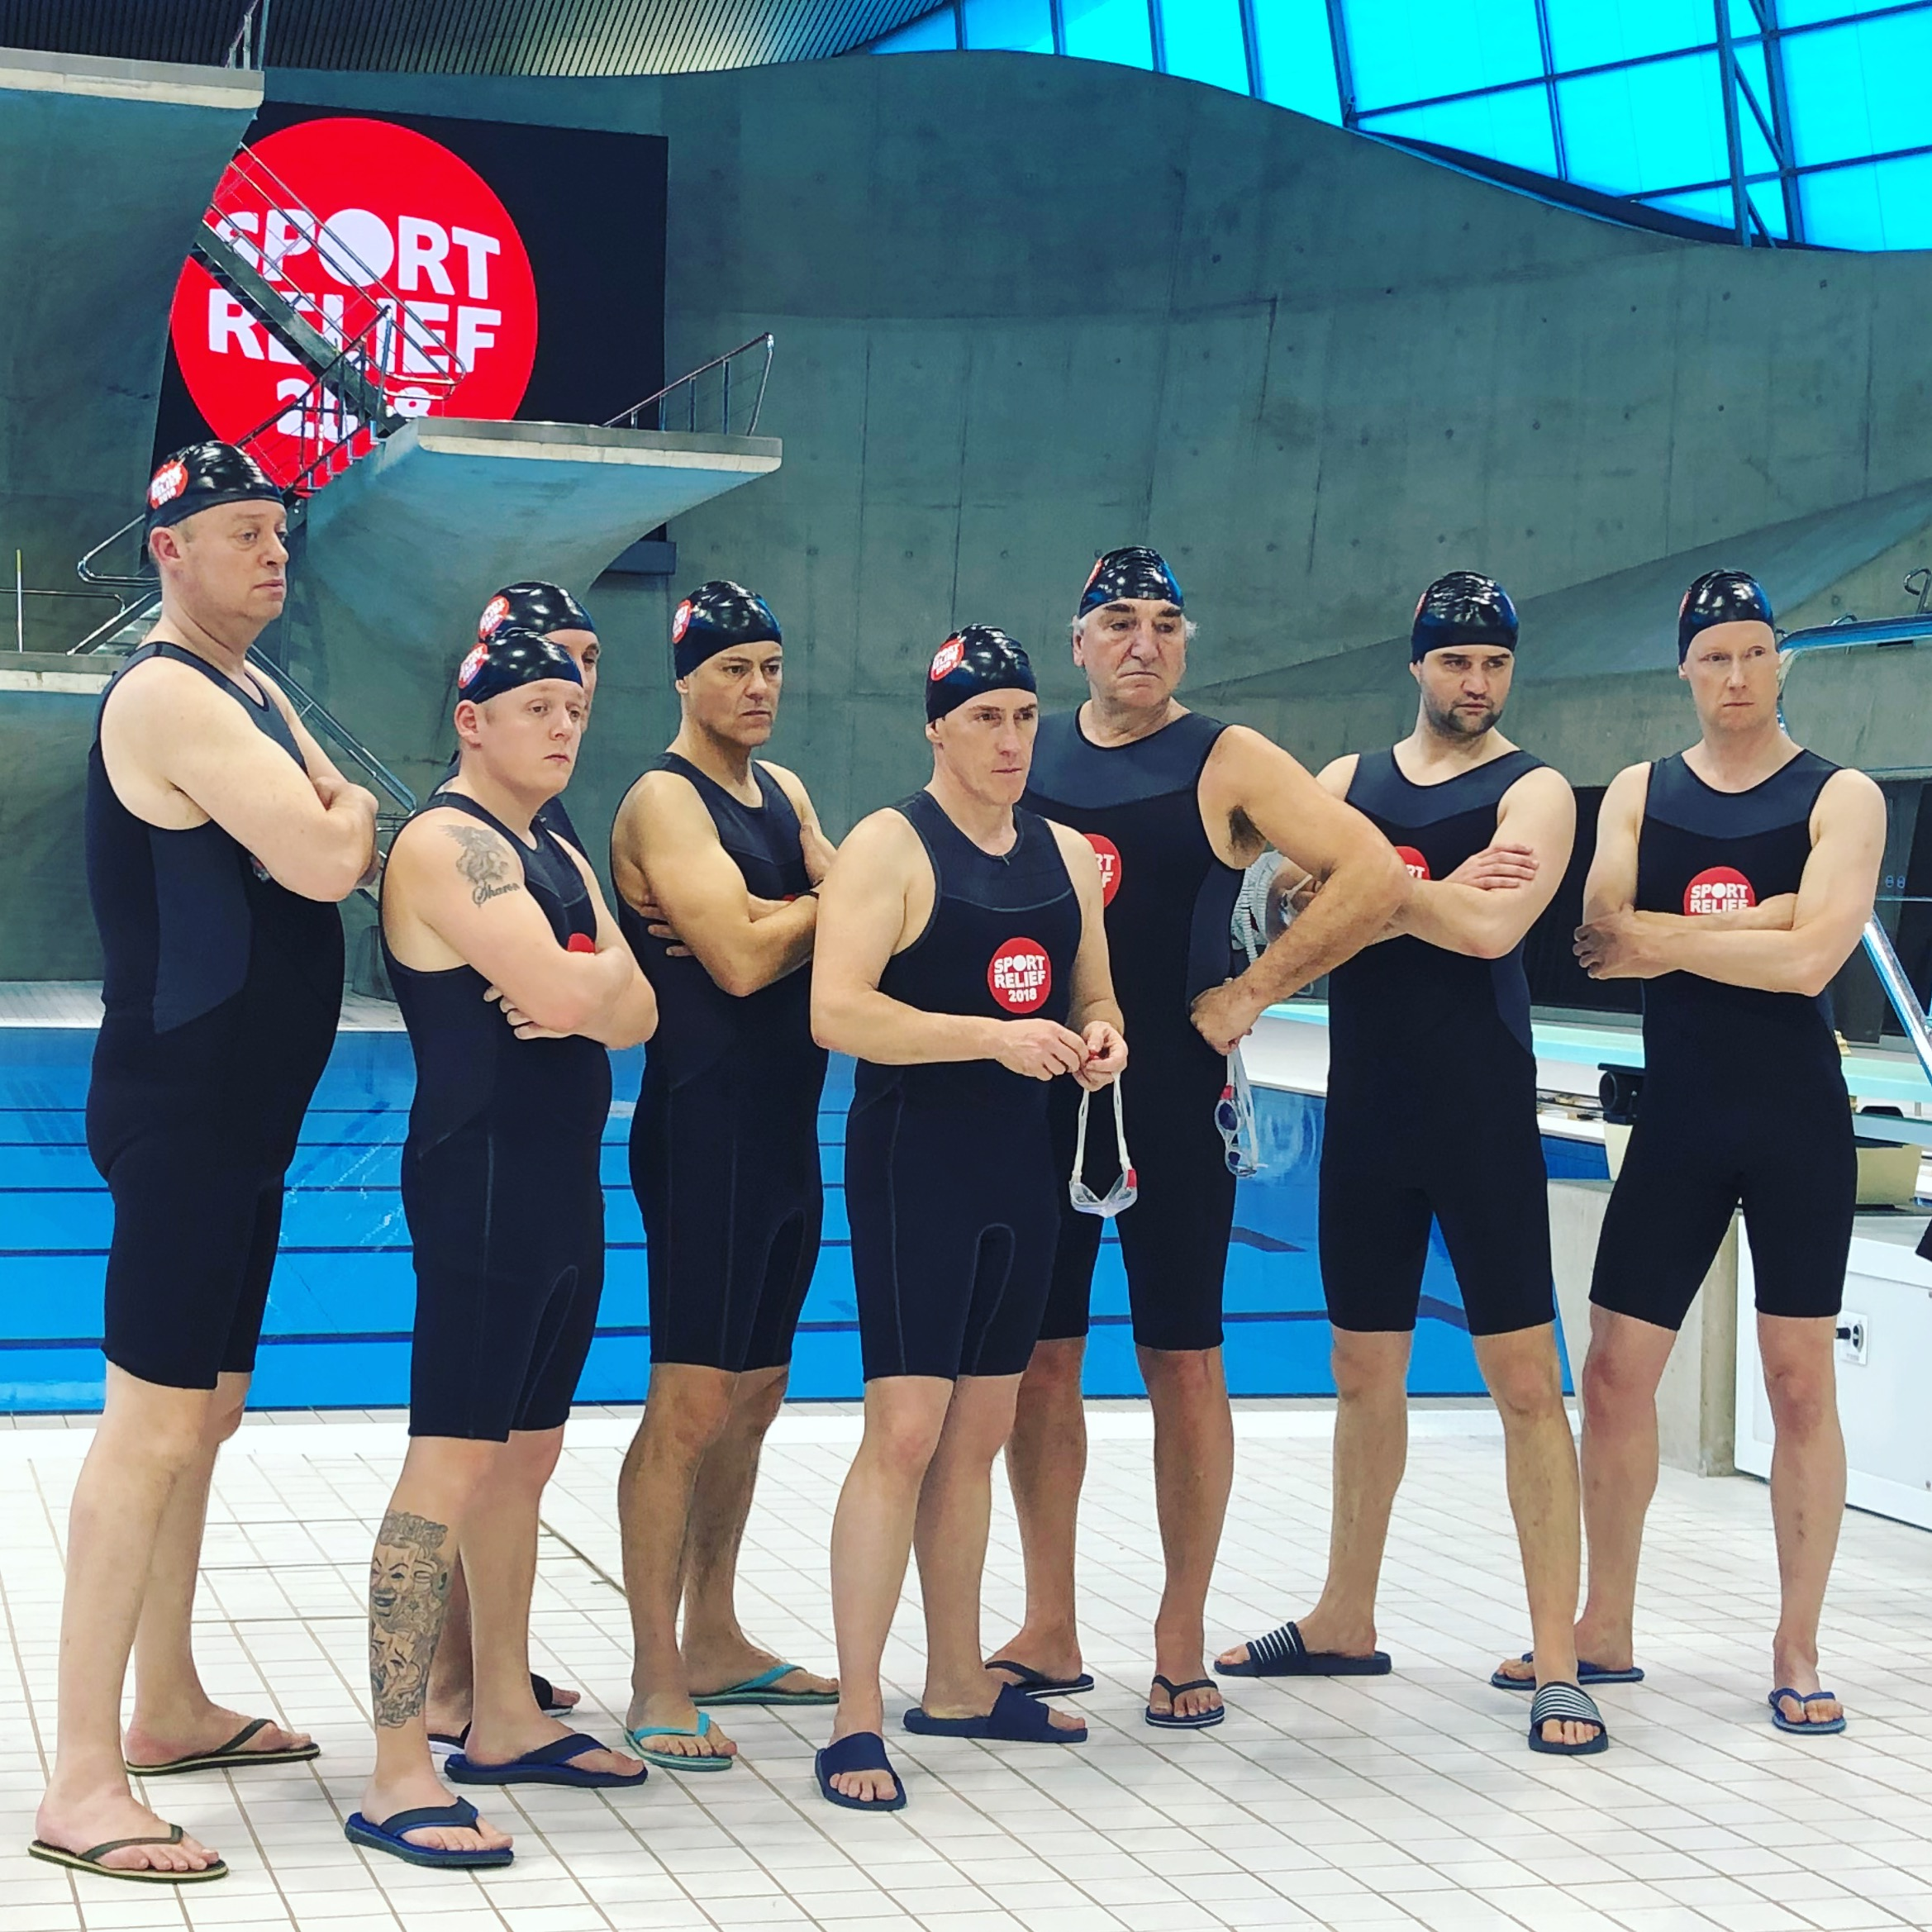 Swimming With Men cast filming Sport Relief 2018